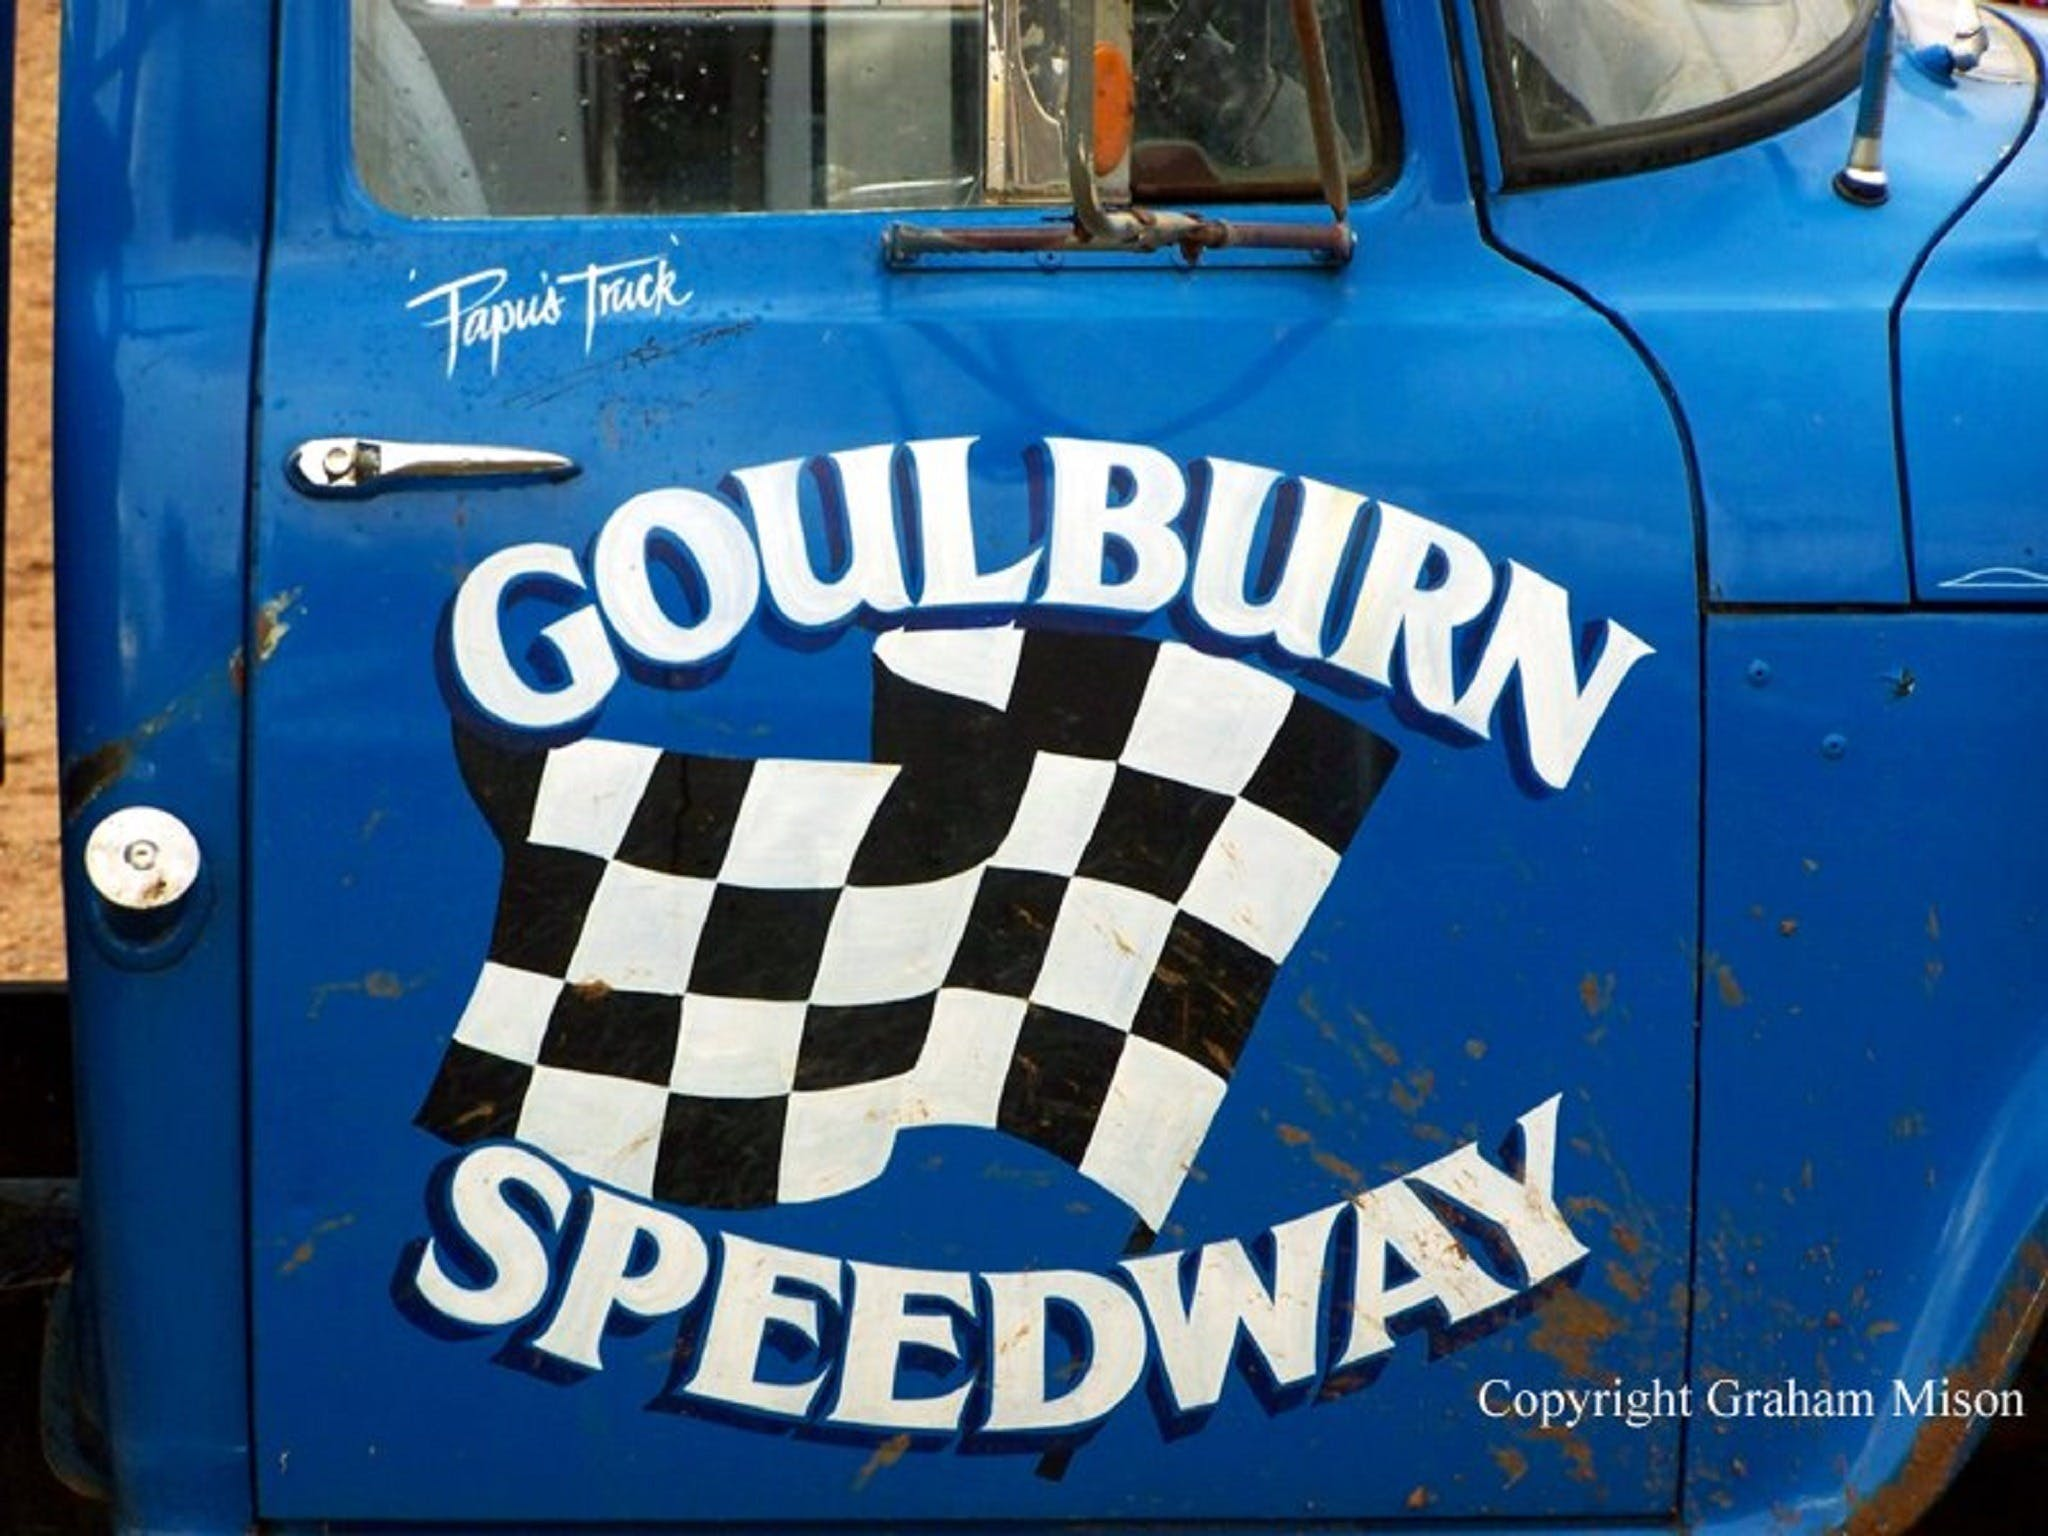 50 years of racing at Goulburn Speedway - Grafton Accommodation